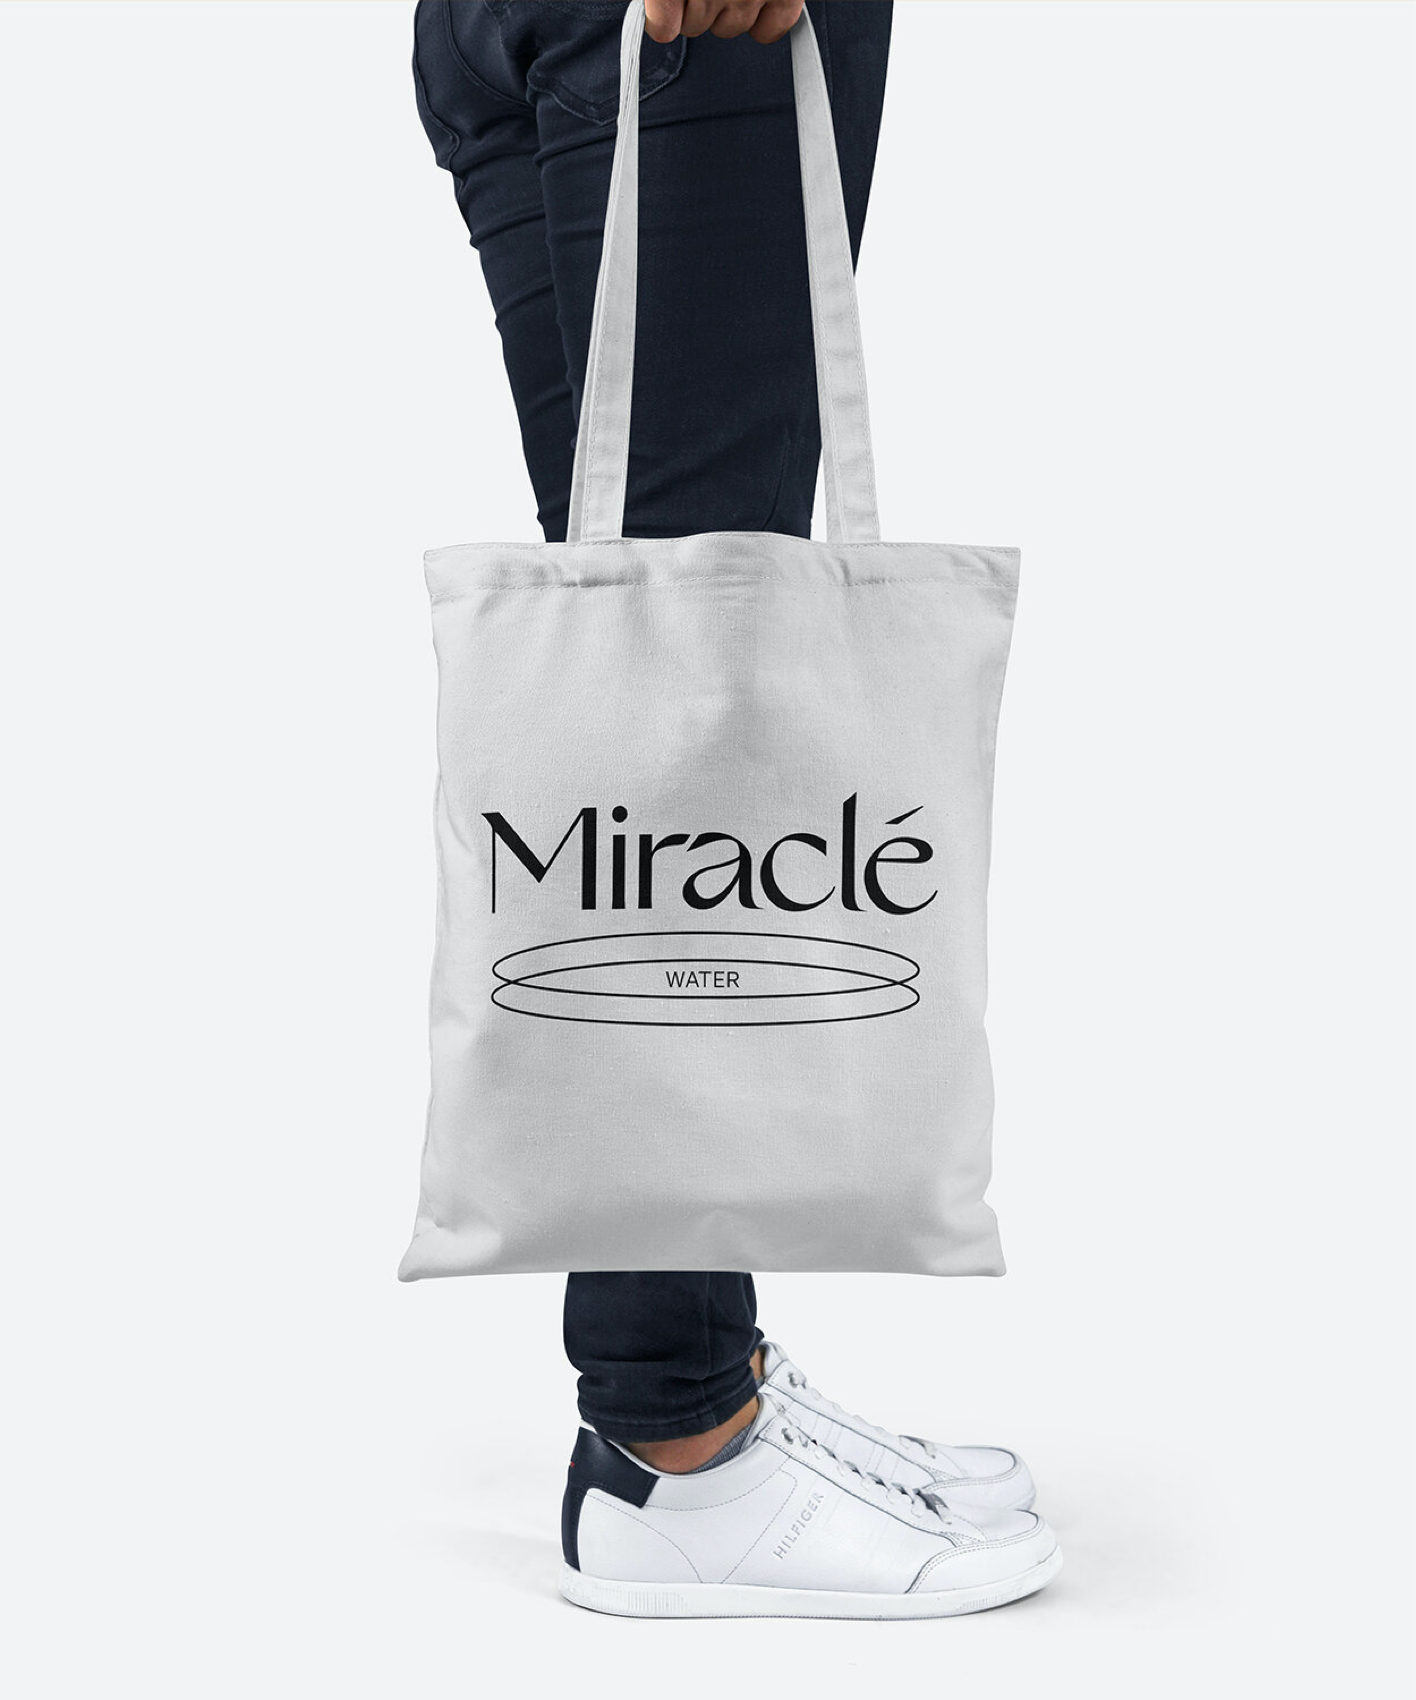 Miracle_08